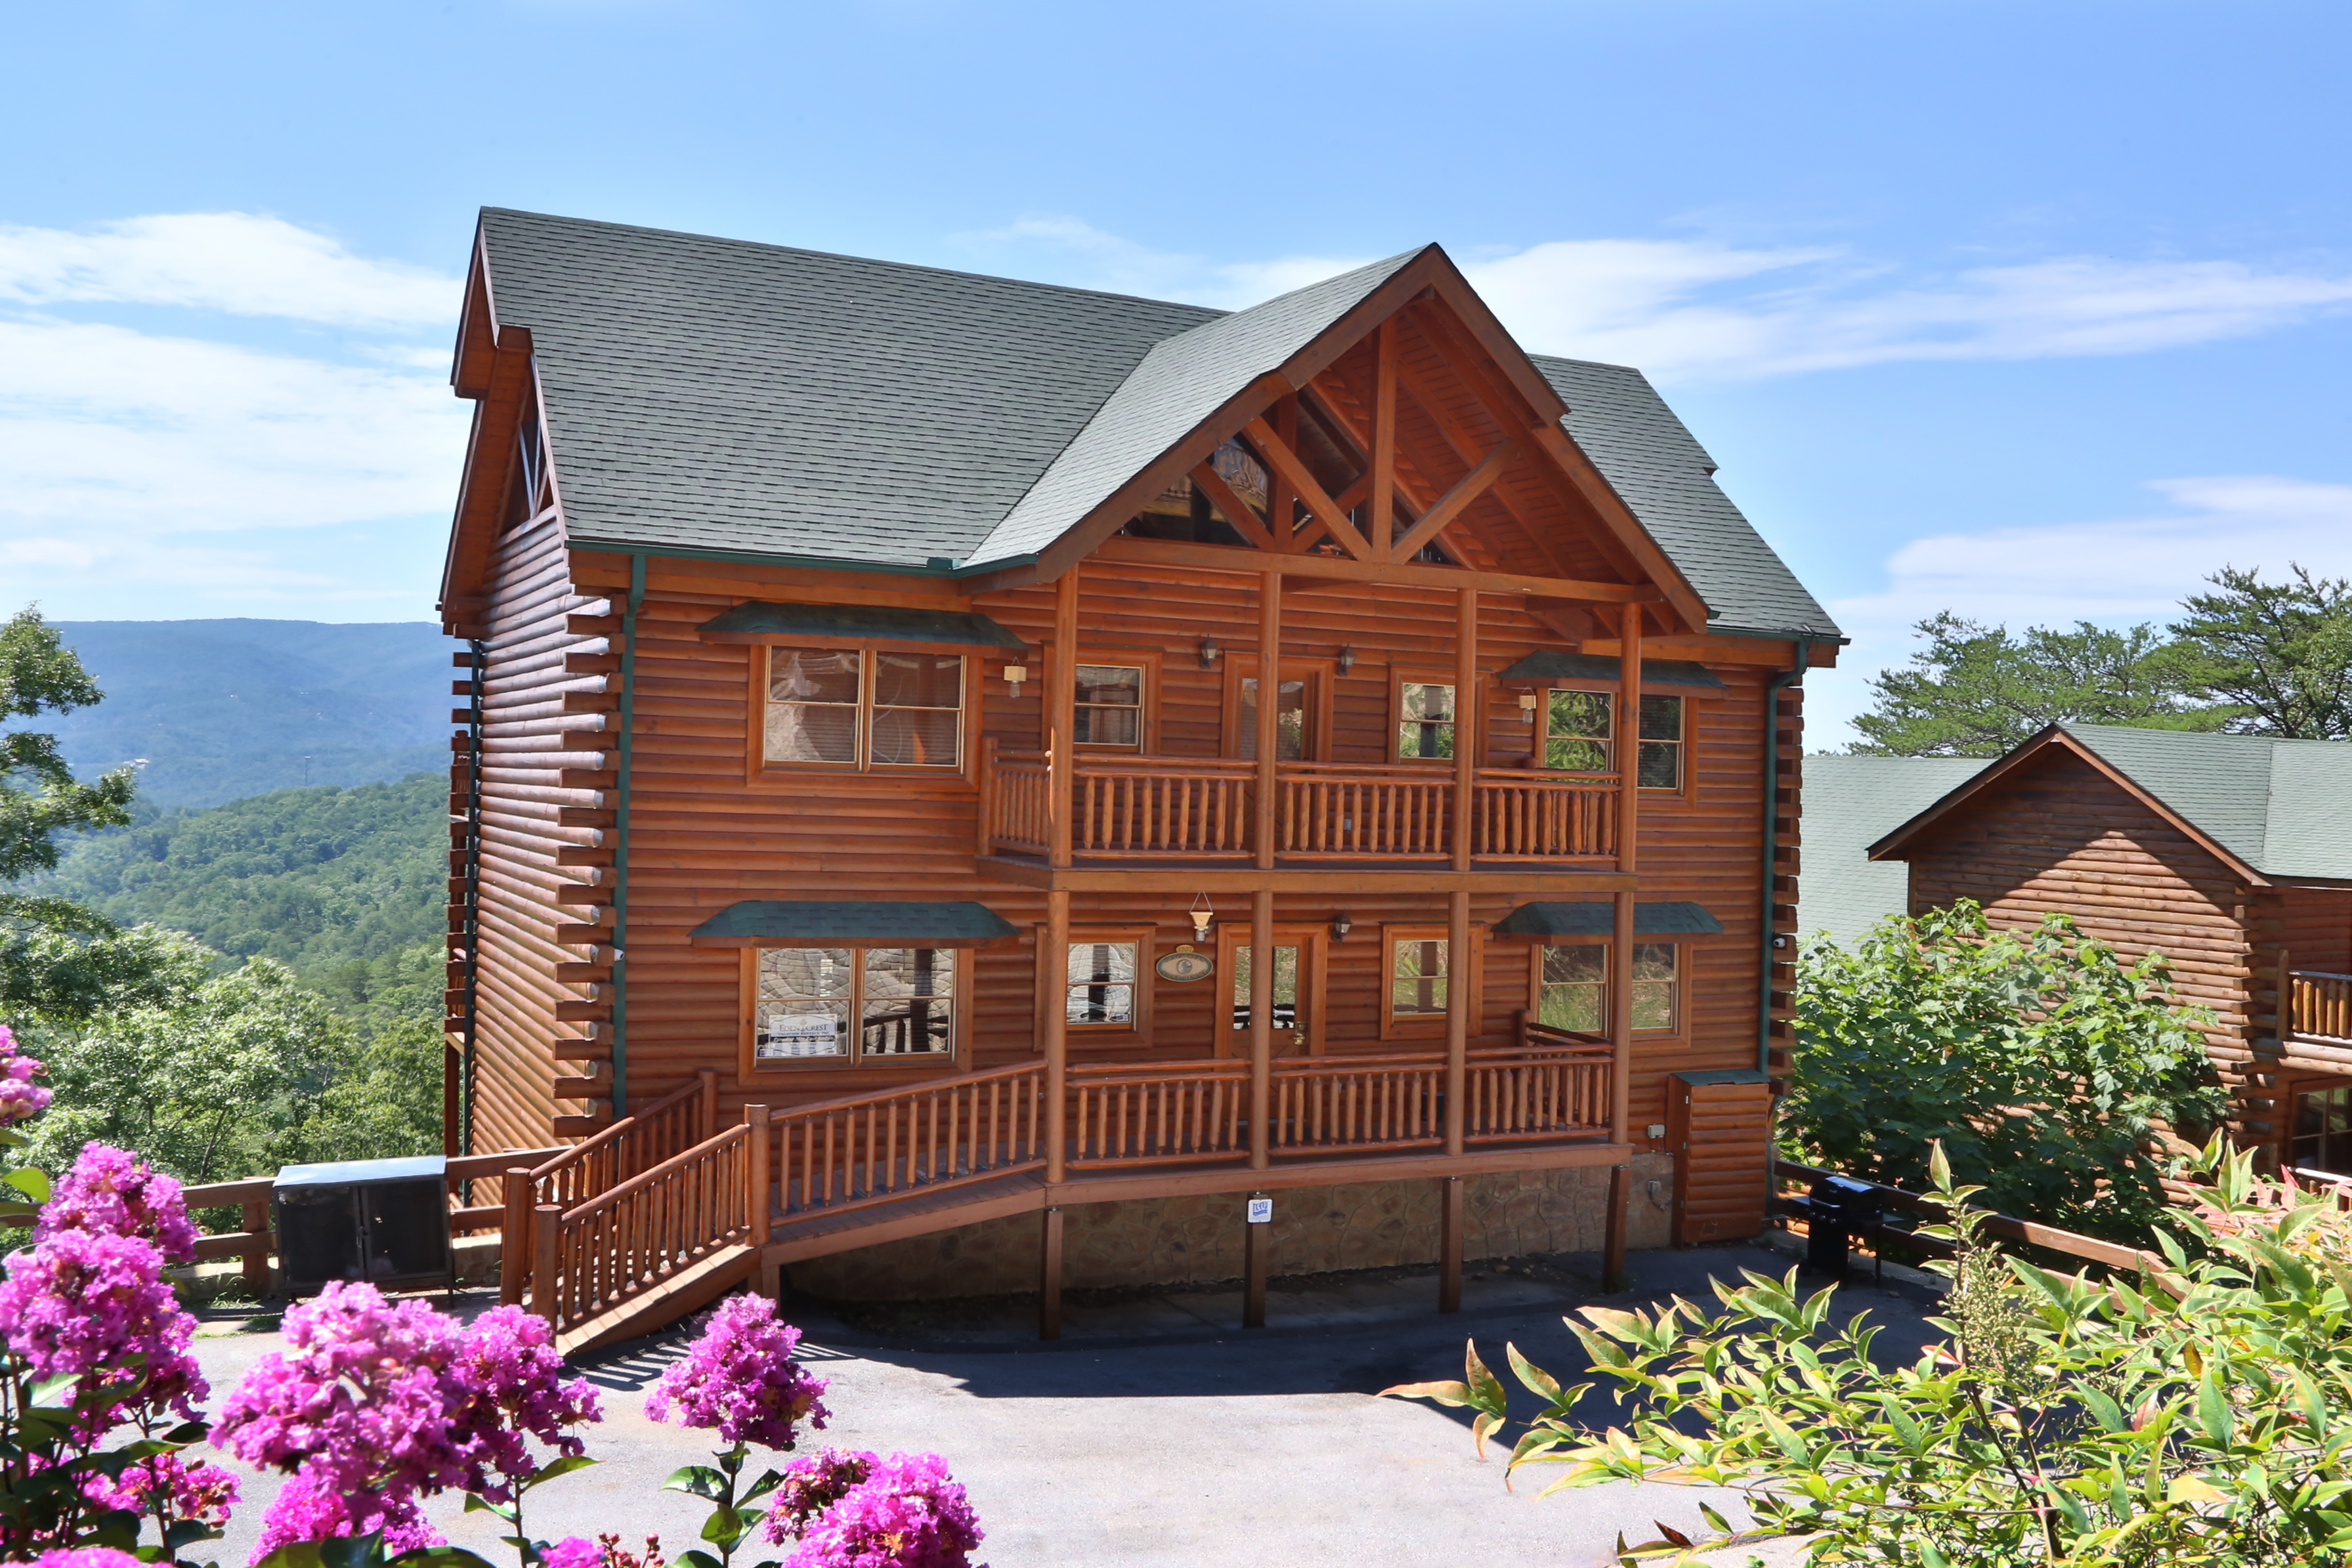 private cabins interior for rentals rental info tn onlinechange pigeon with friendly pet pools gatlinburg pool rent swimming outdoor forge cabin